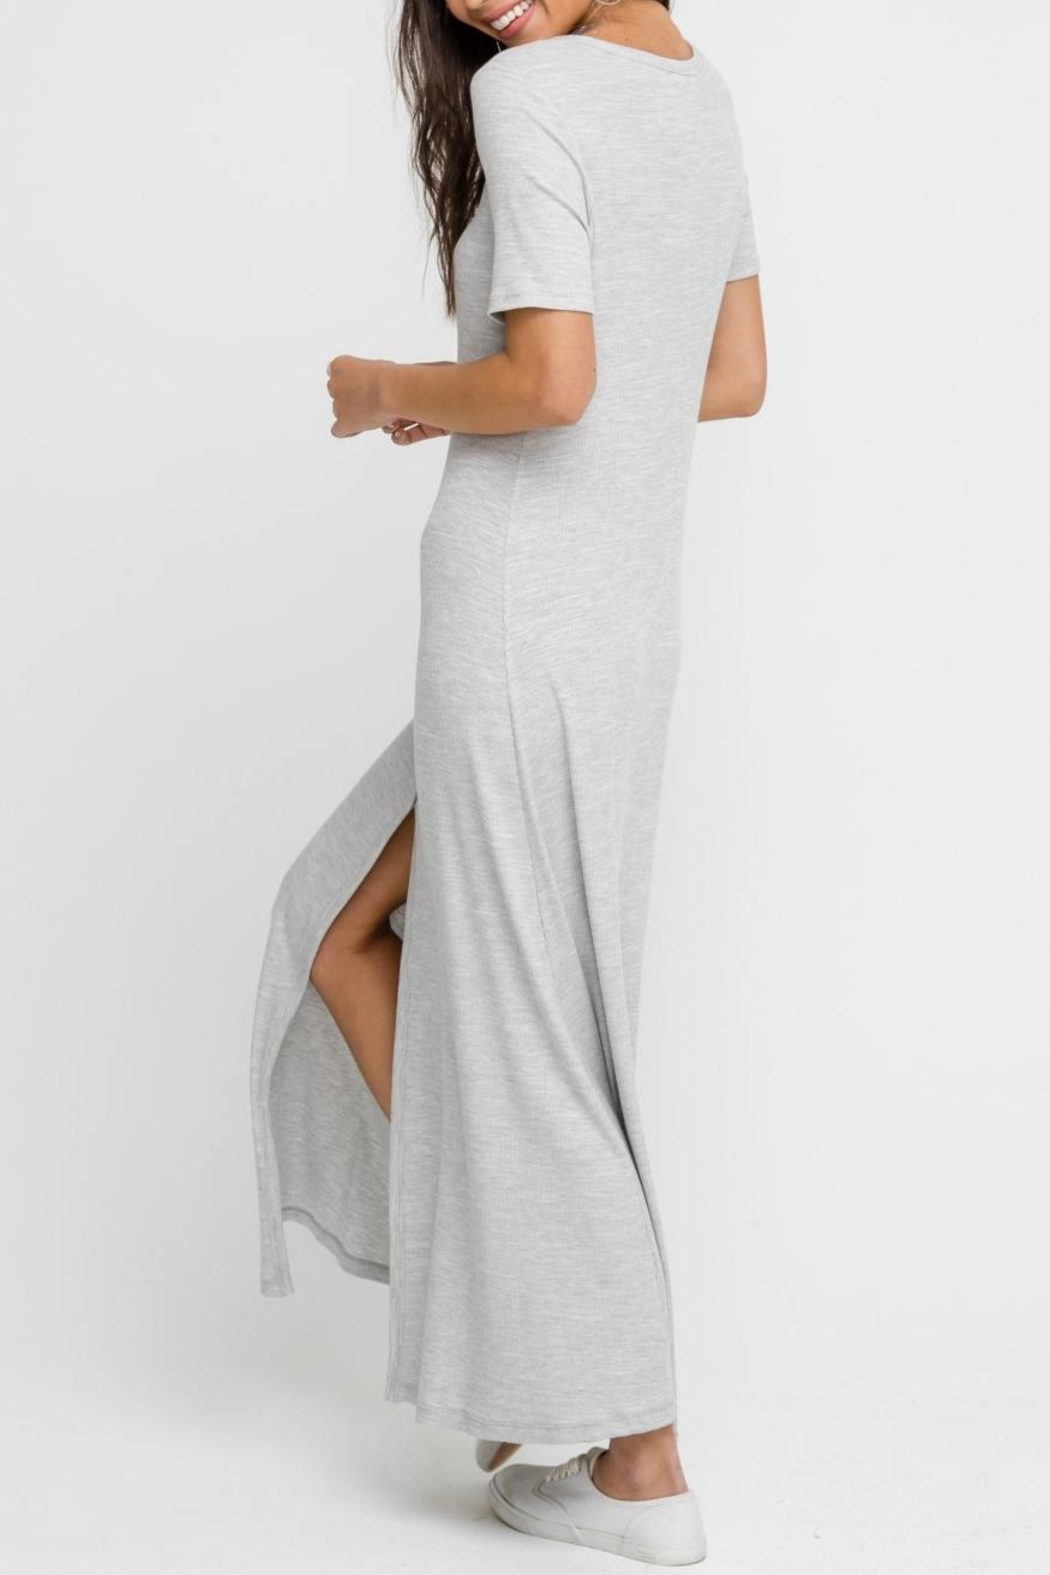 Lush Heather-Grey Button-Down Dress - Back Cropped Image